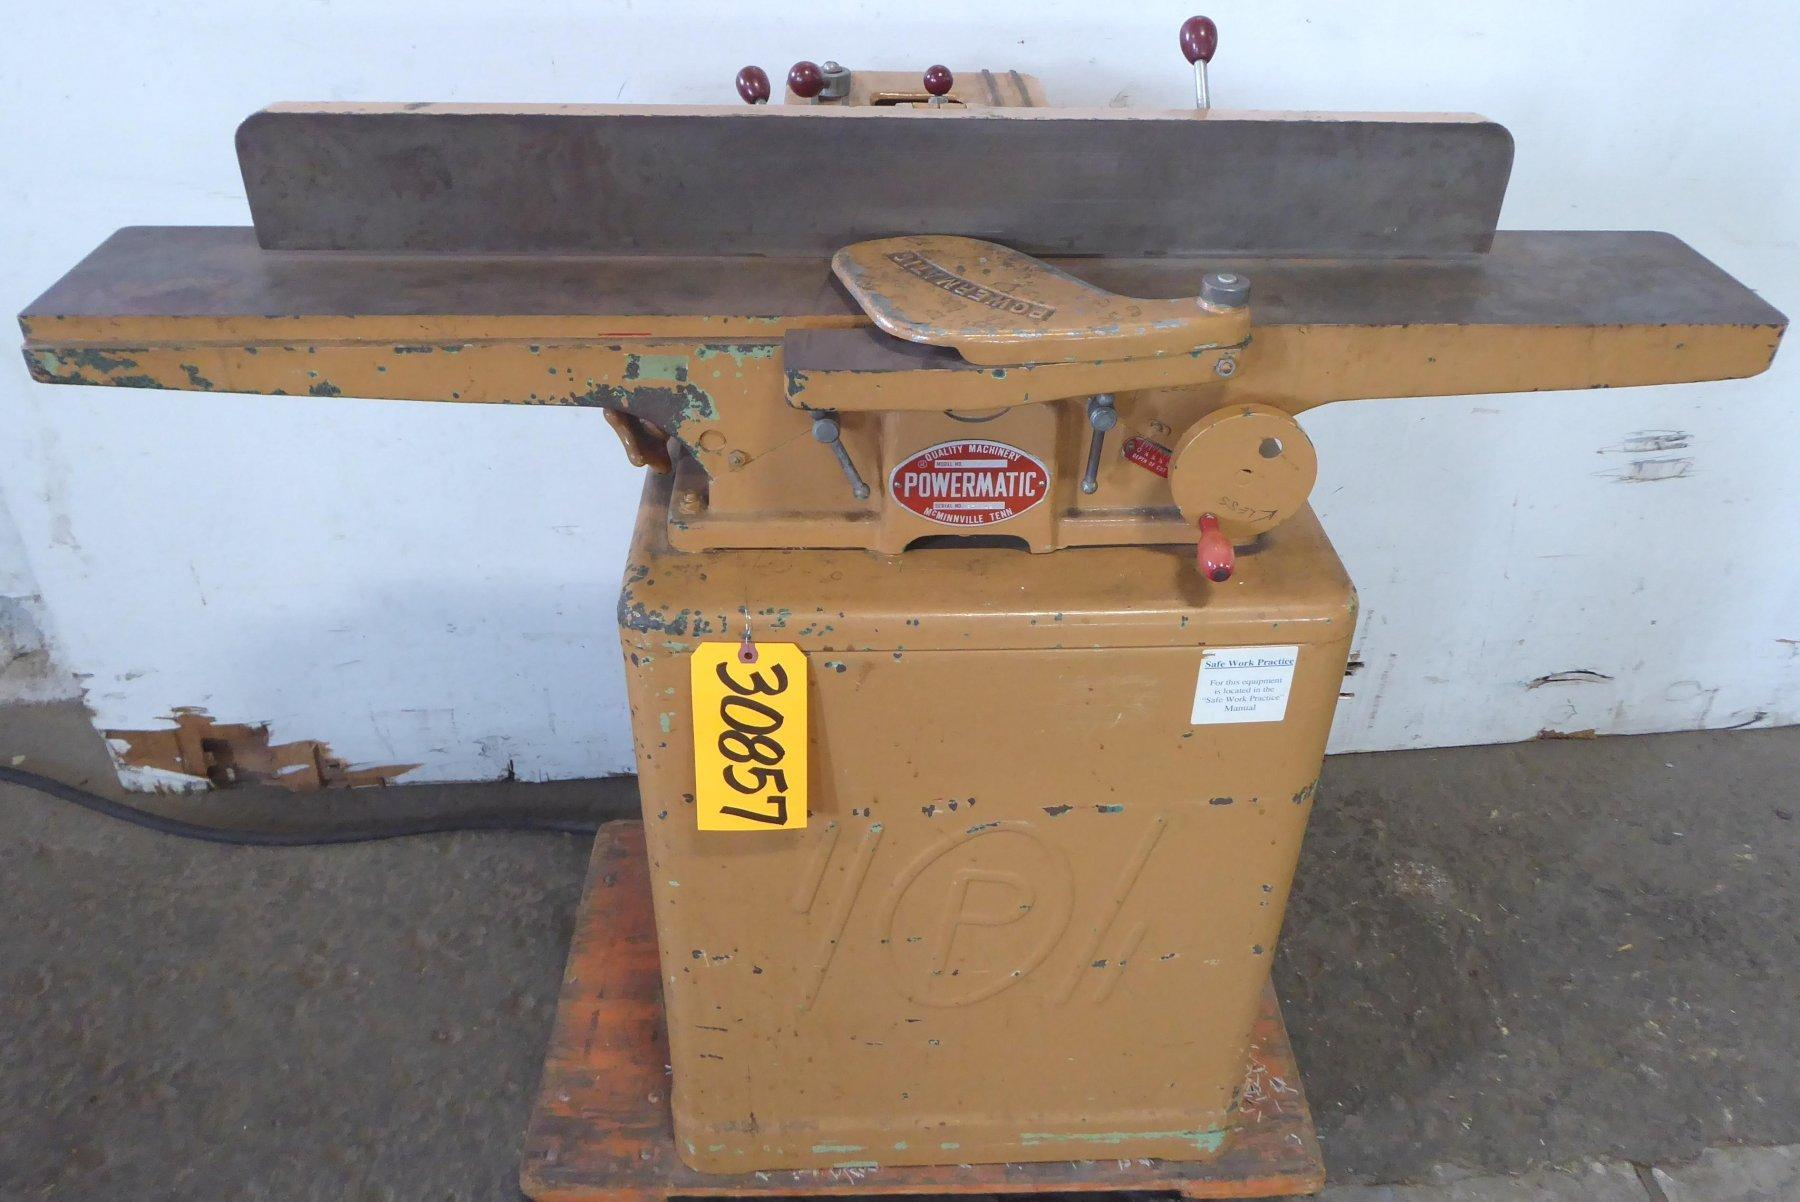 Powermatic 6″ Jointer Model 50